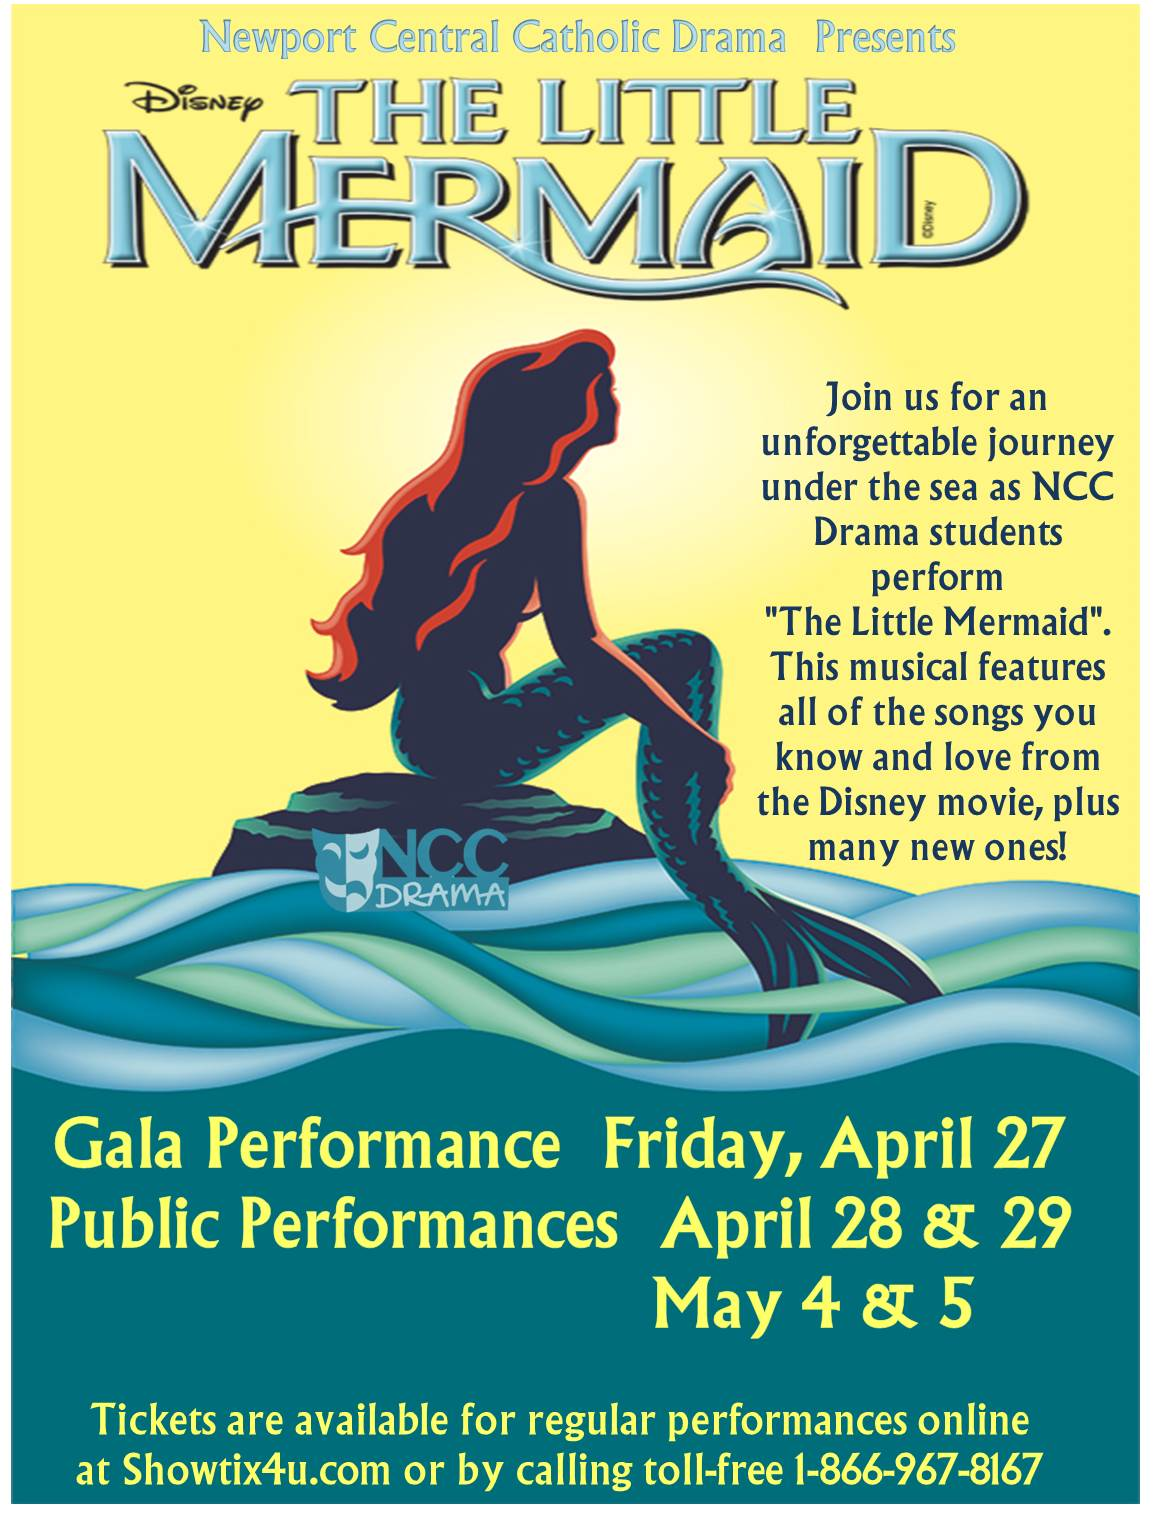 poster advertising the litte mermaid.jpg